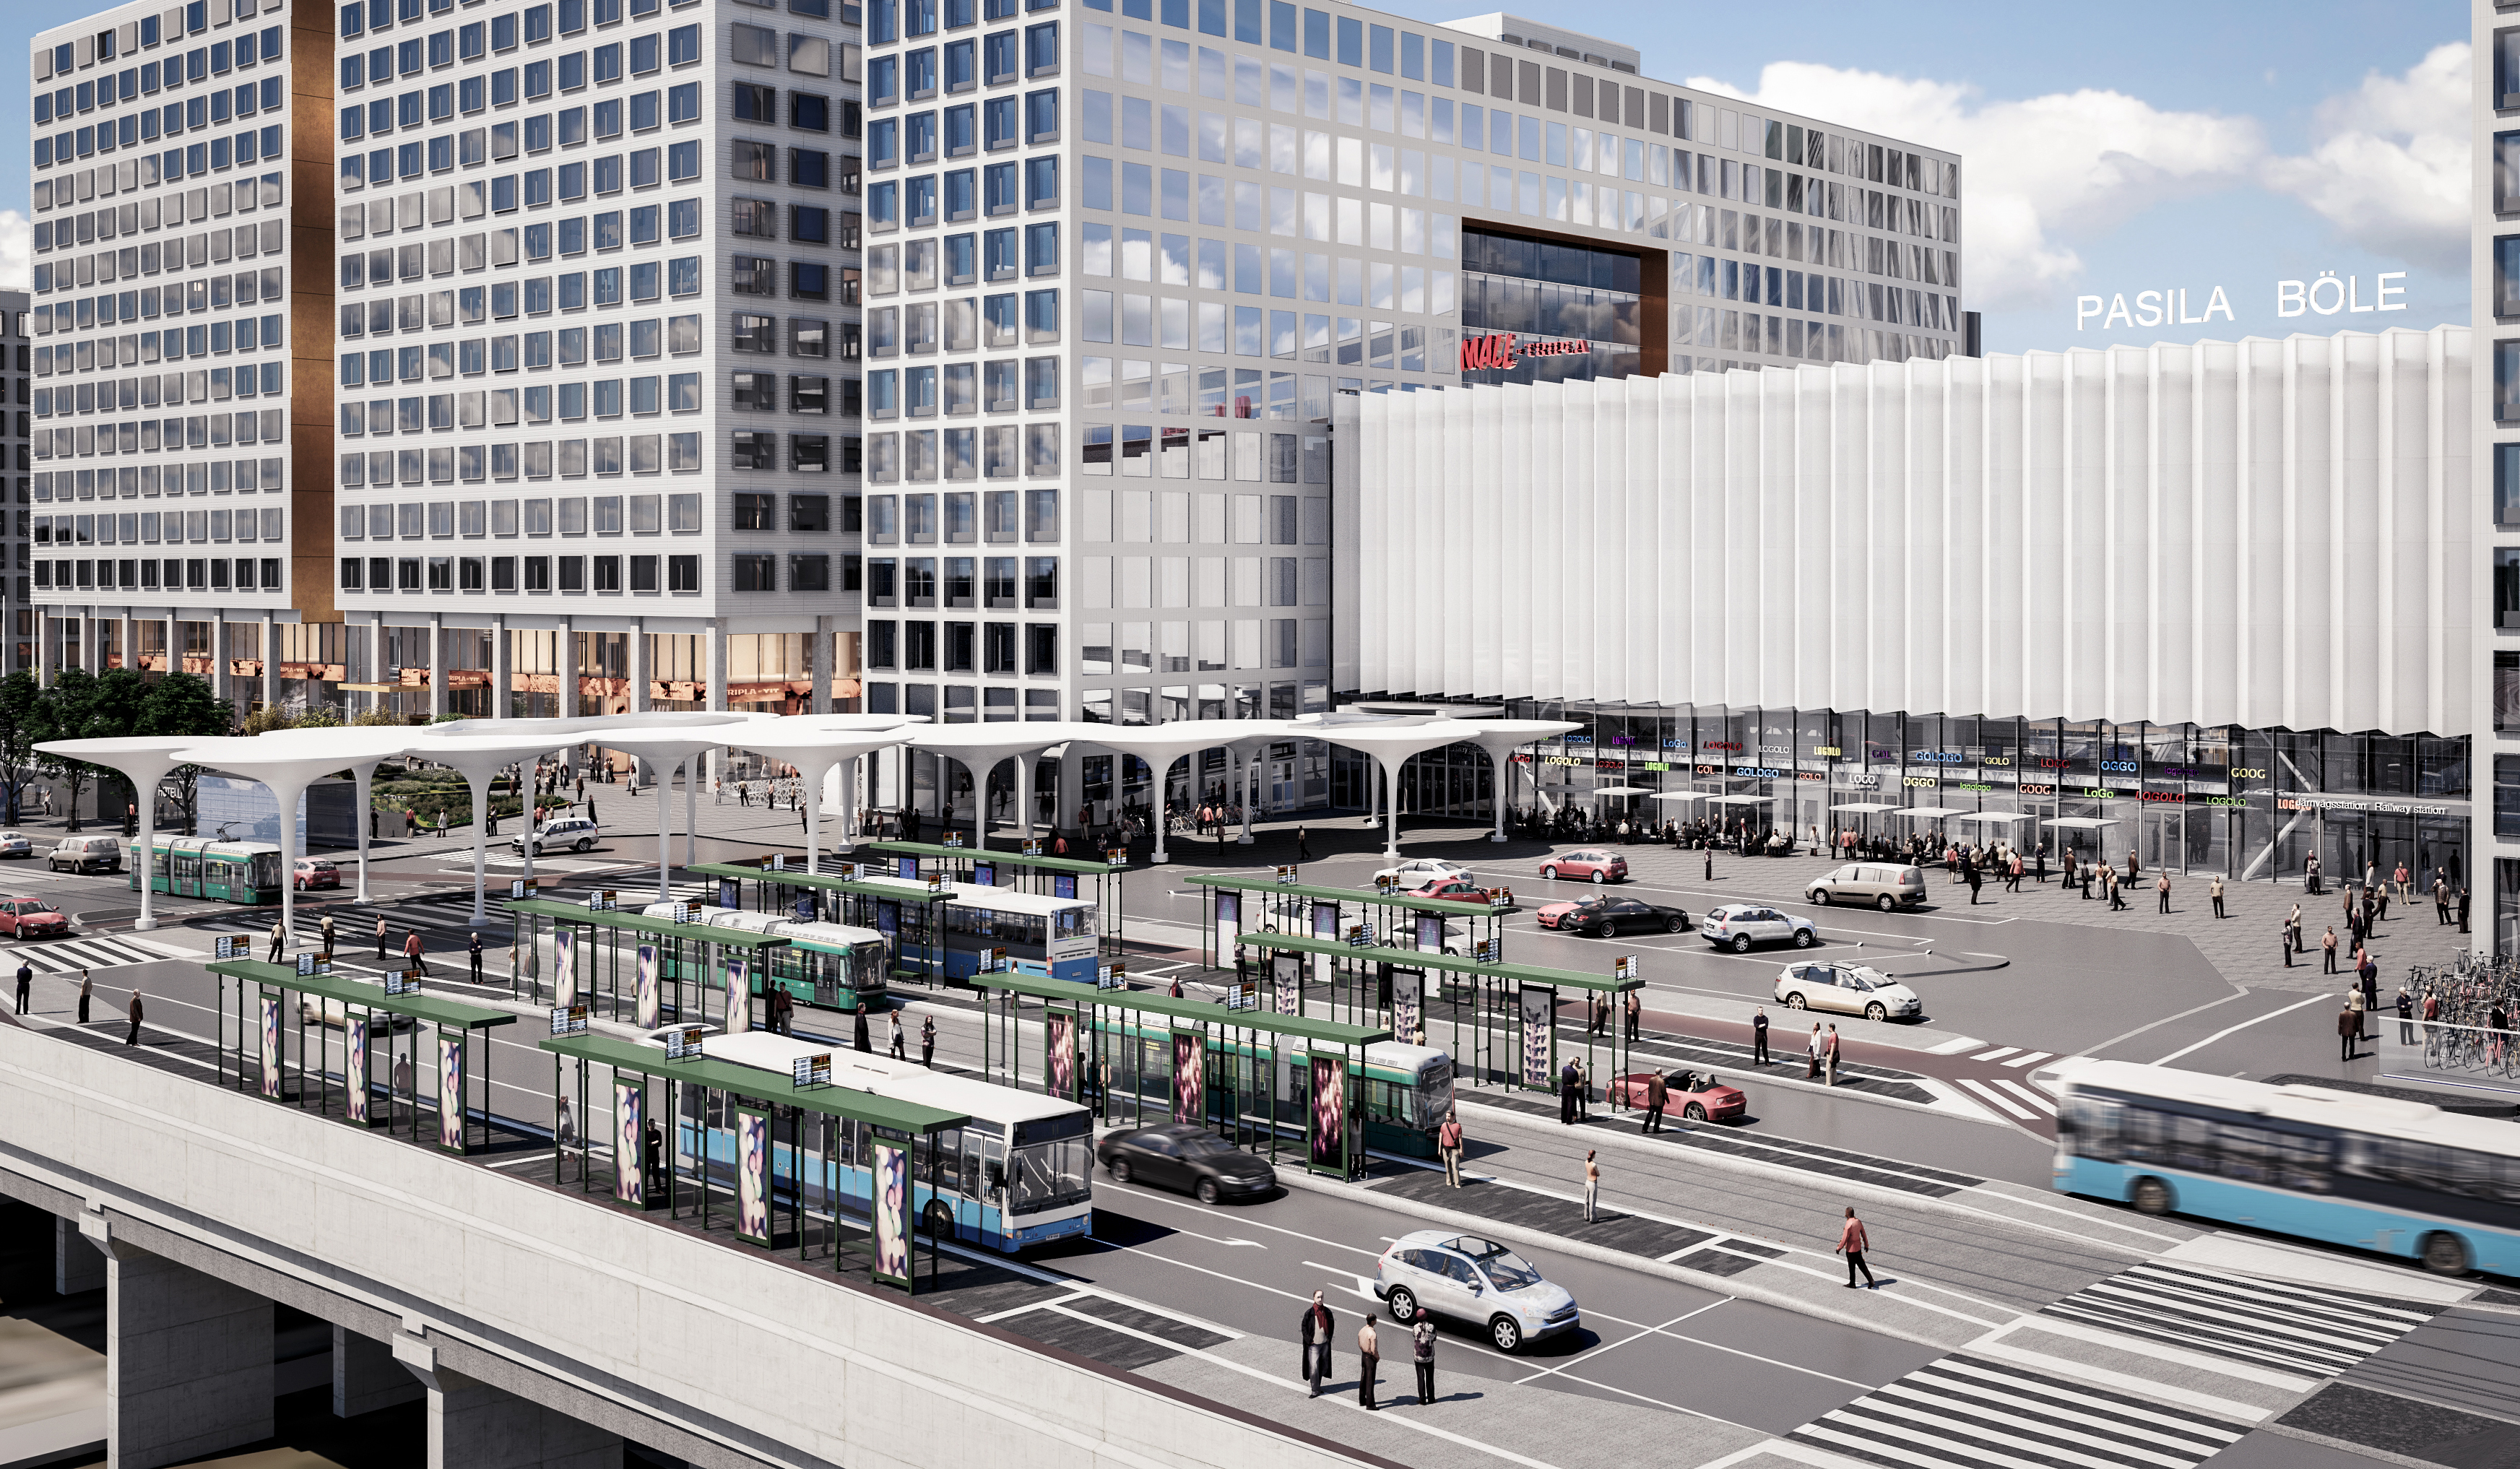 Public transport terminal to go under construction in Pasila